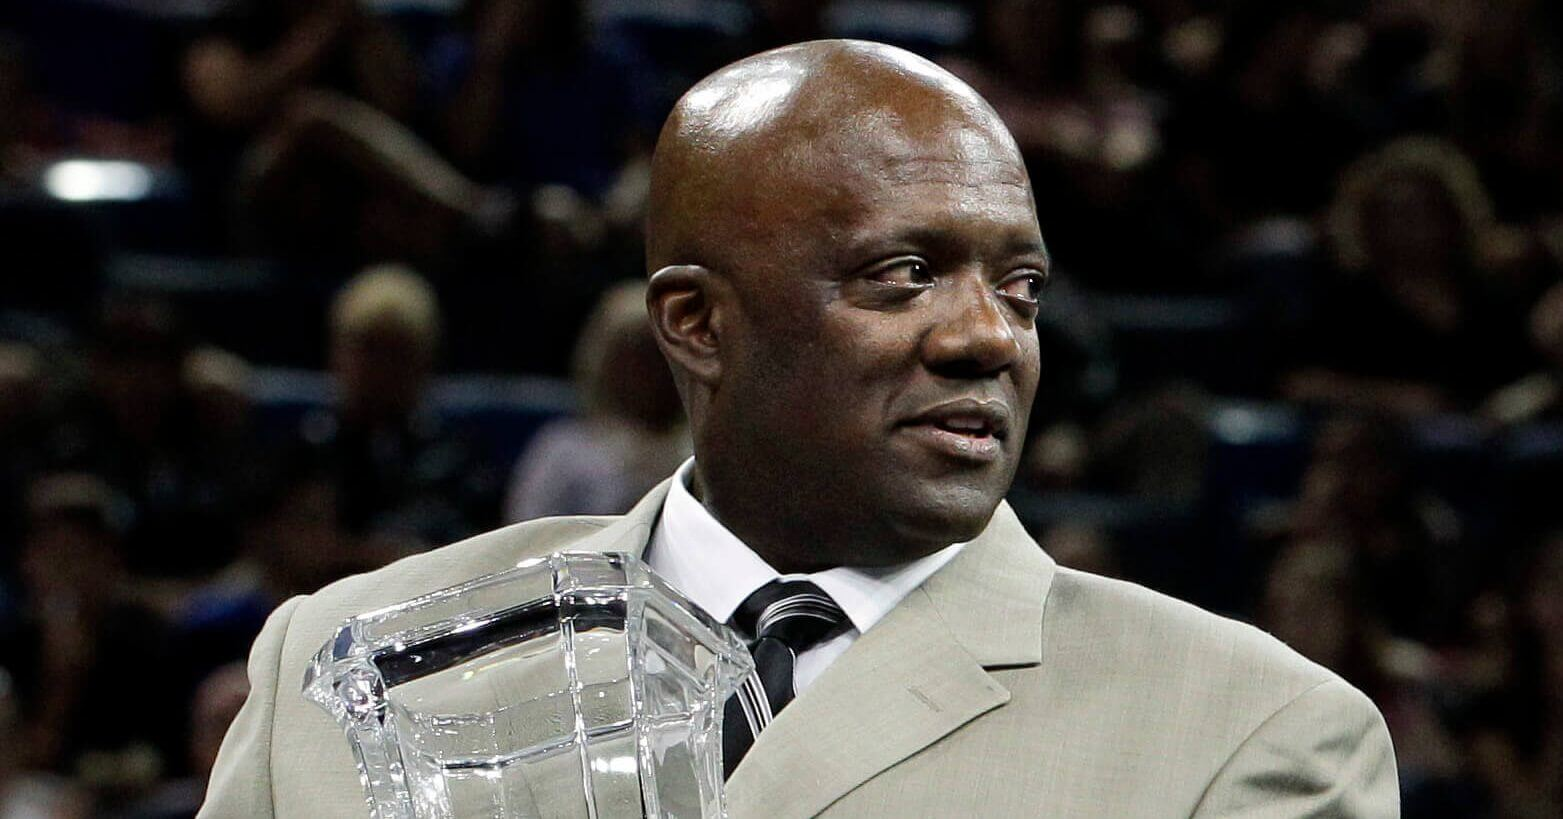 In this Aug. 14, 2010, file photo, Ron Galimore, a member of the 1980 Olympic gymnastics team that did not compete due to the U.S. boycott of the Olympic Games in Russia, is honored at the U.S. Gymnastics Championships in Hartford, Connecticut.